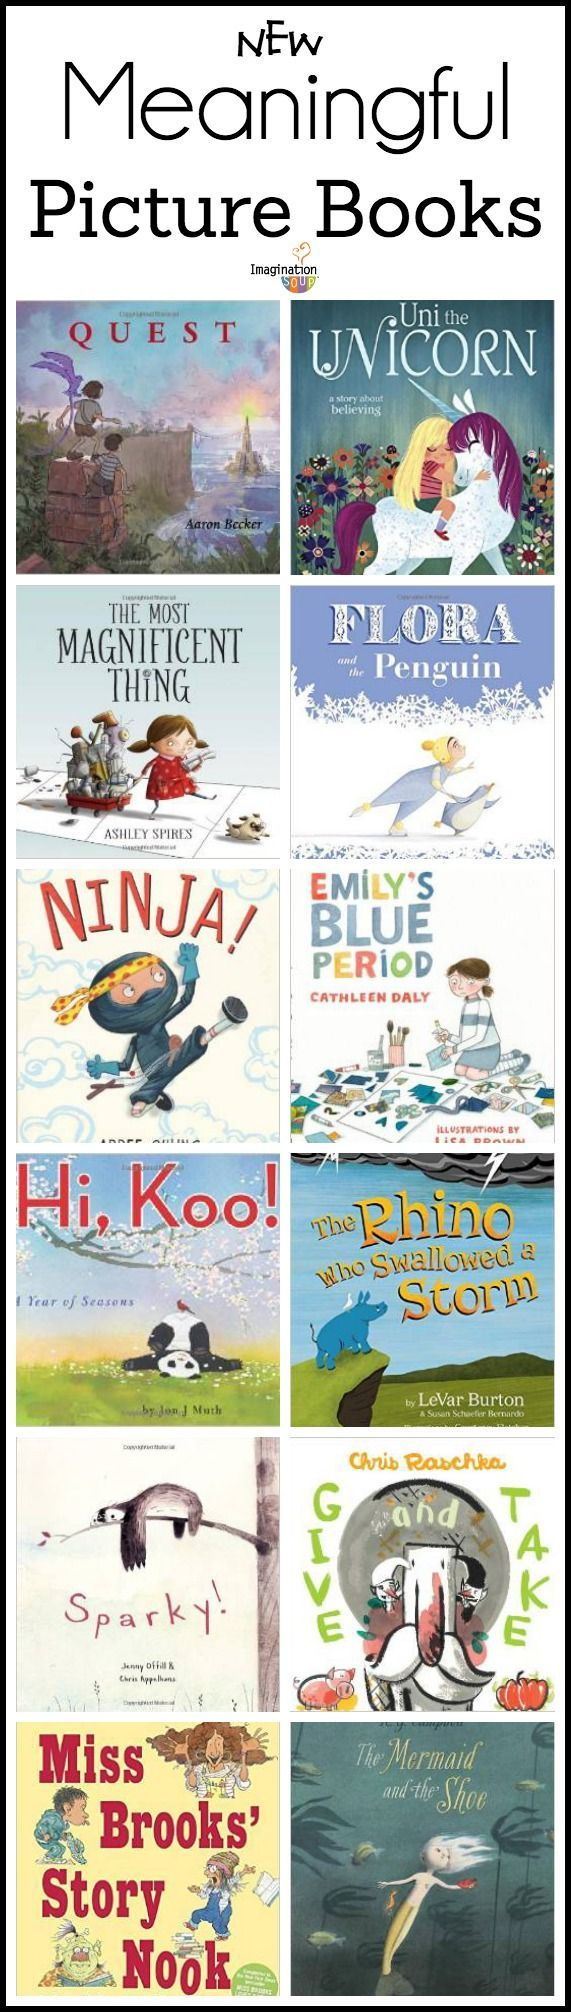 NEW meaningful picture books --> great converation starters for you & your kids!